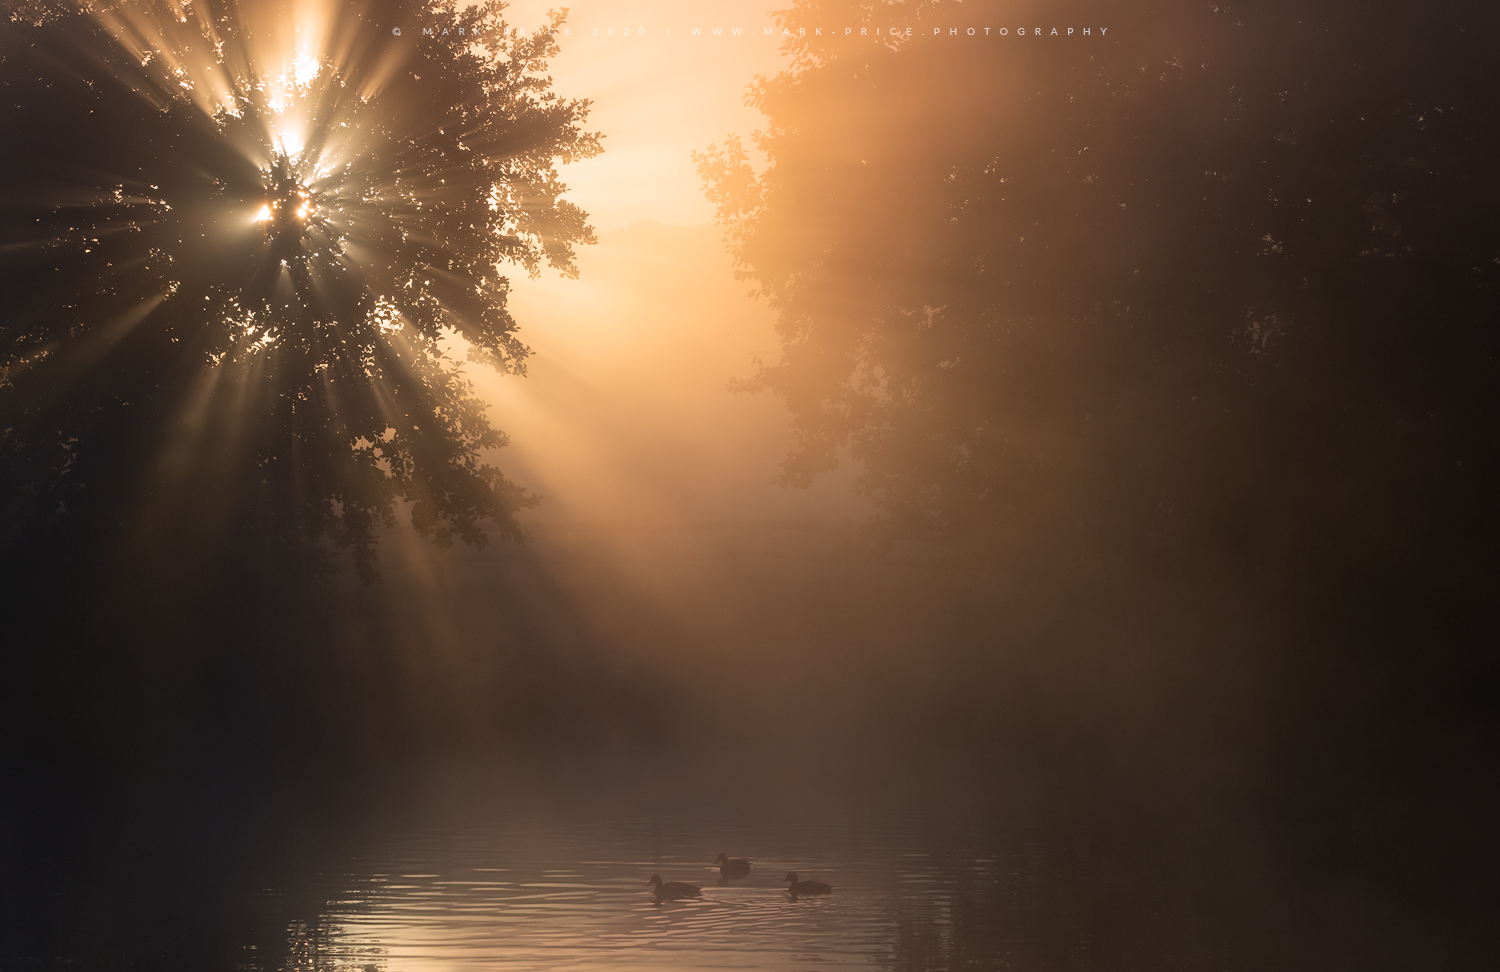 First light emerges through the trees of a quiet Sussex lake